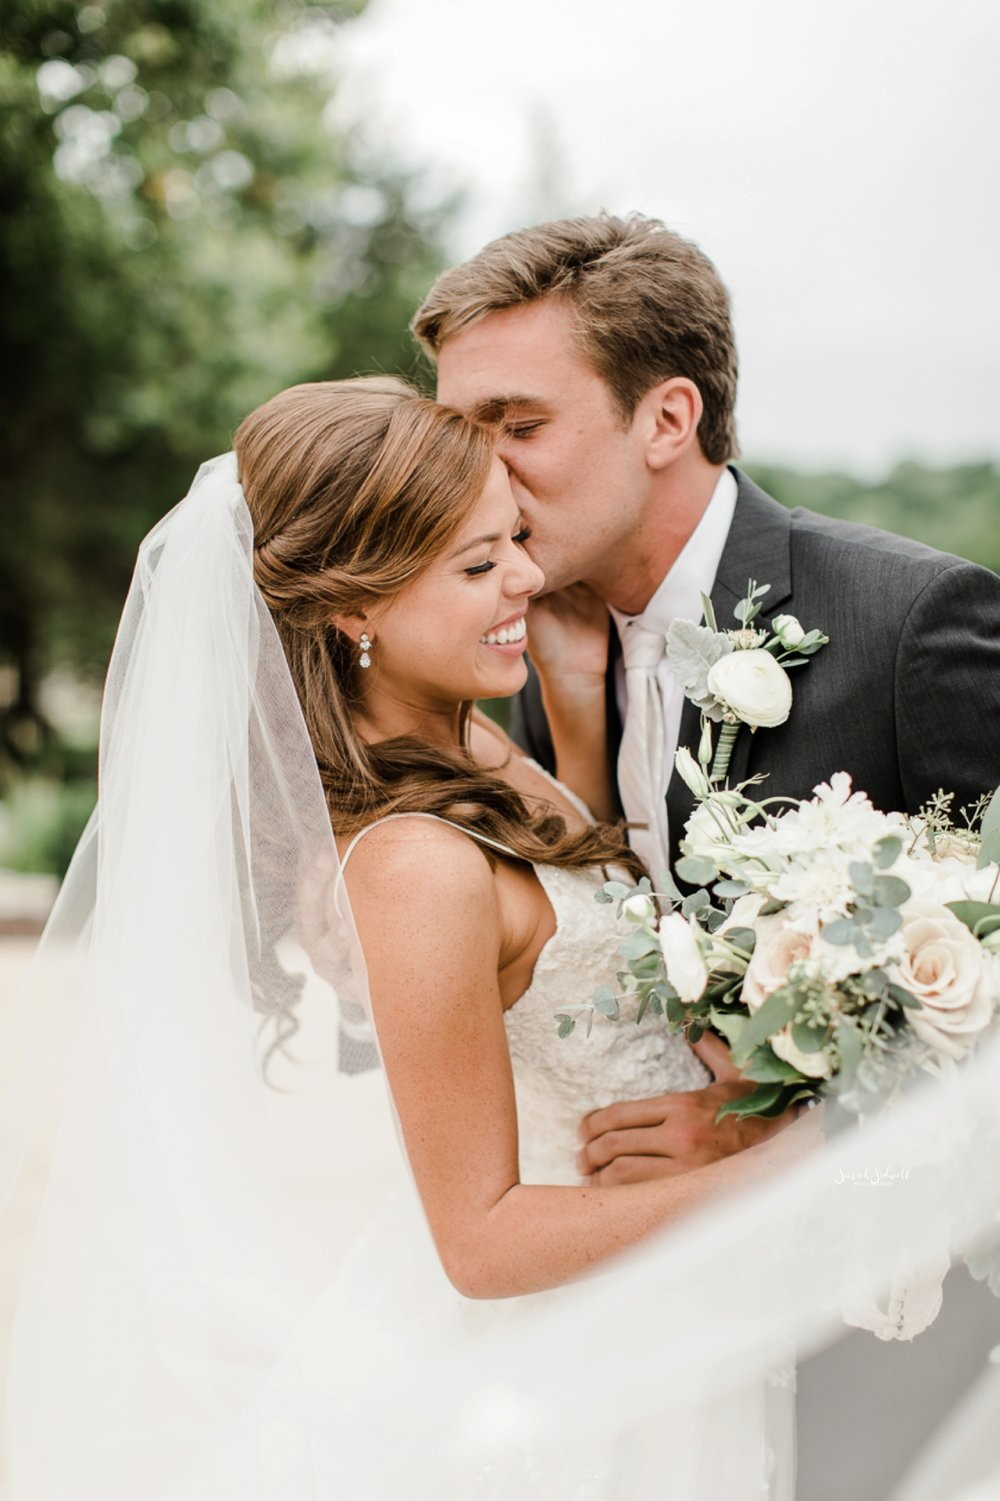 A groom kisses his bride on the cheek.